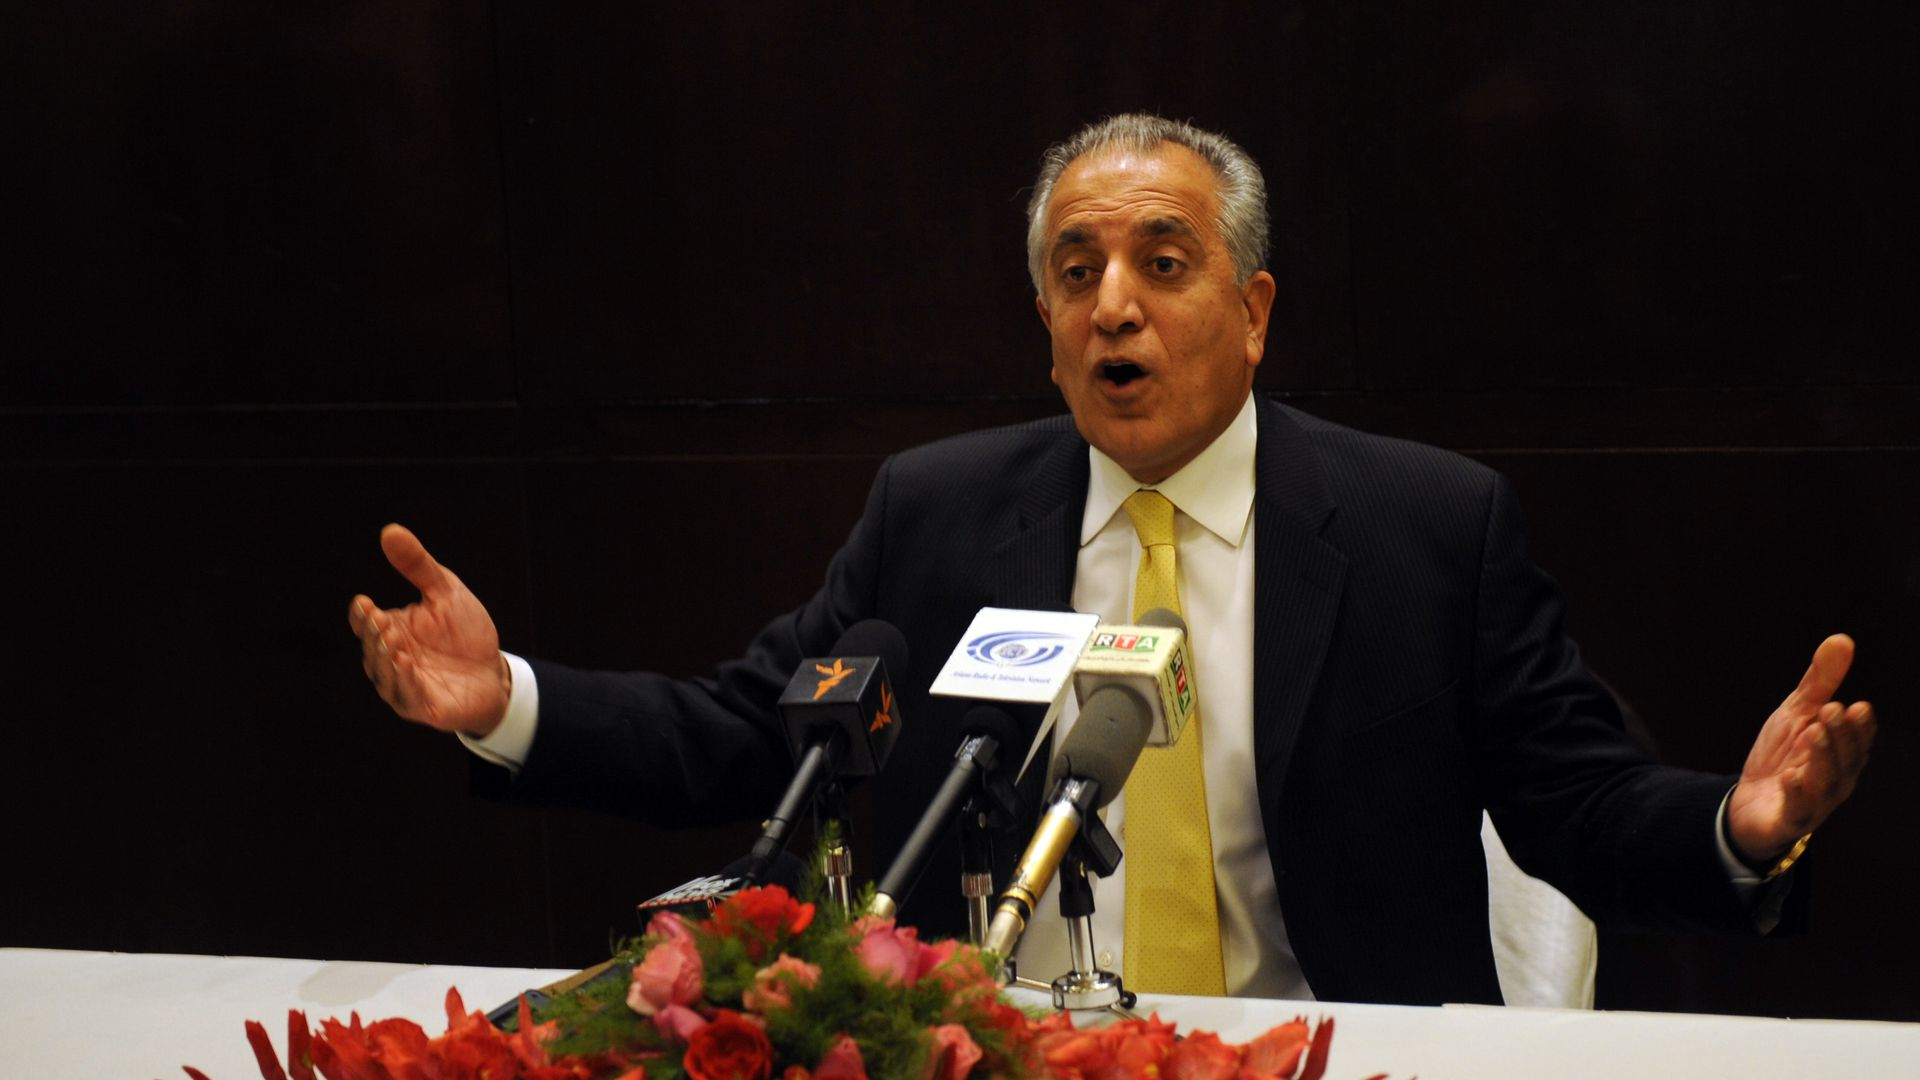 Zalmay Khalilzad speaks and gestures from a table with mics